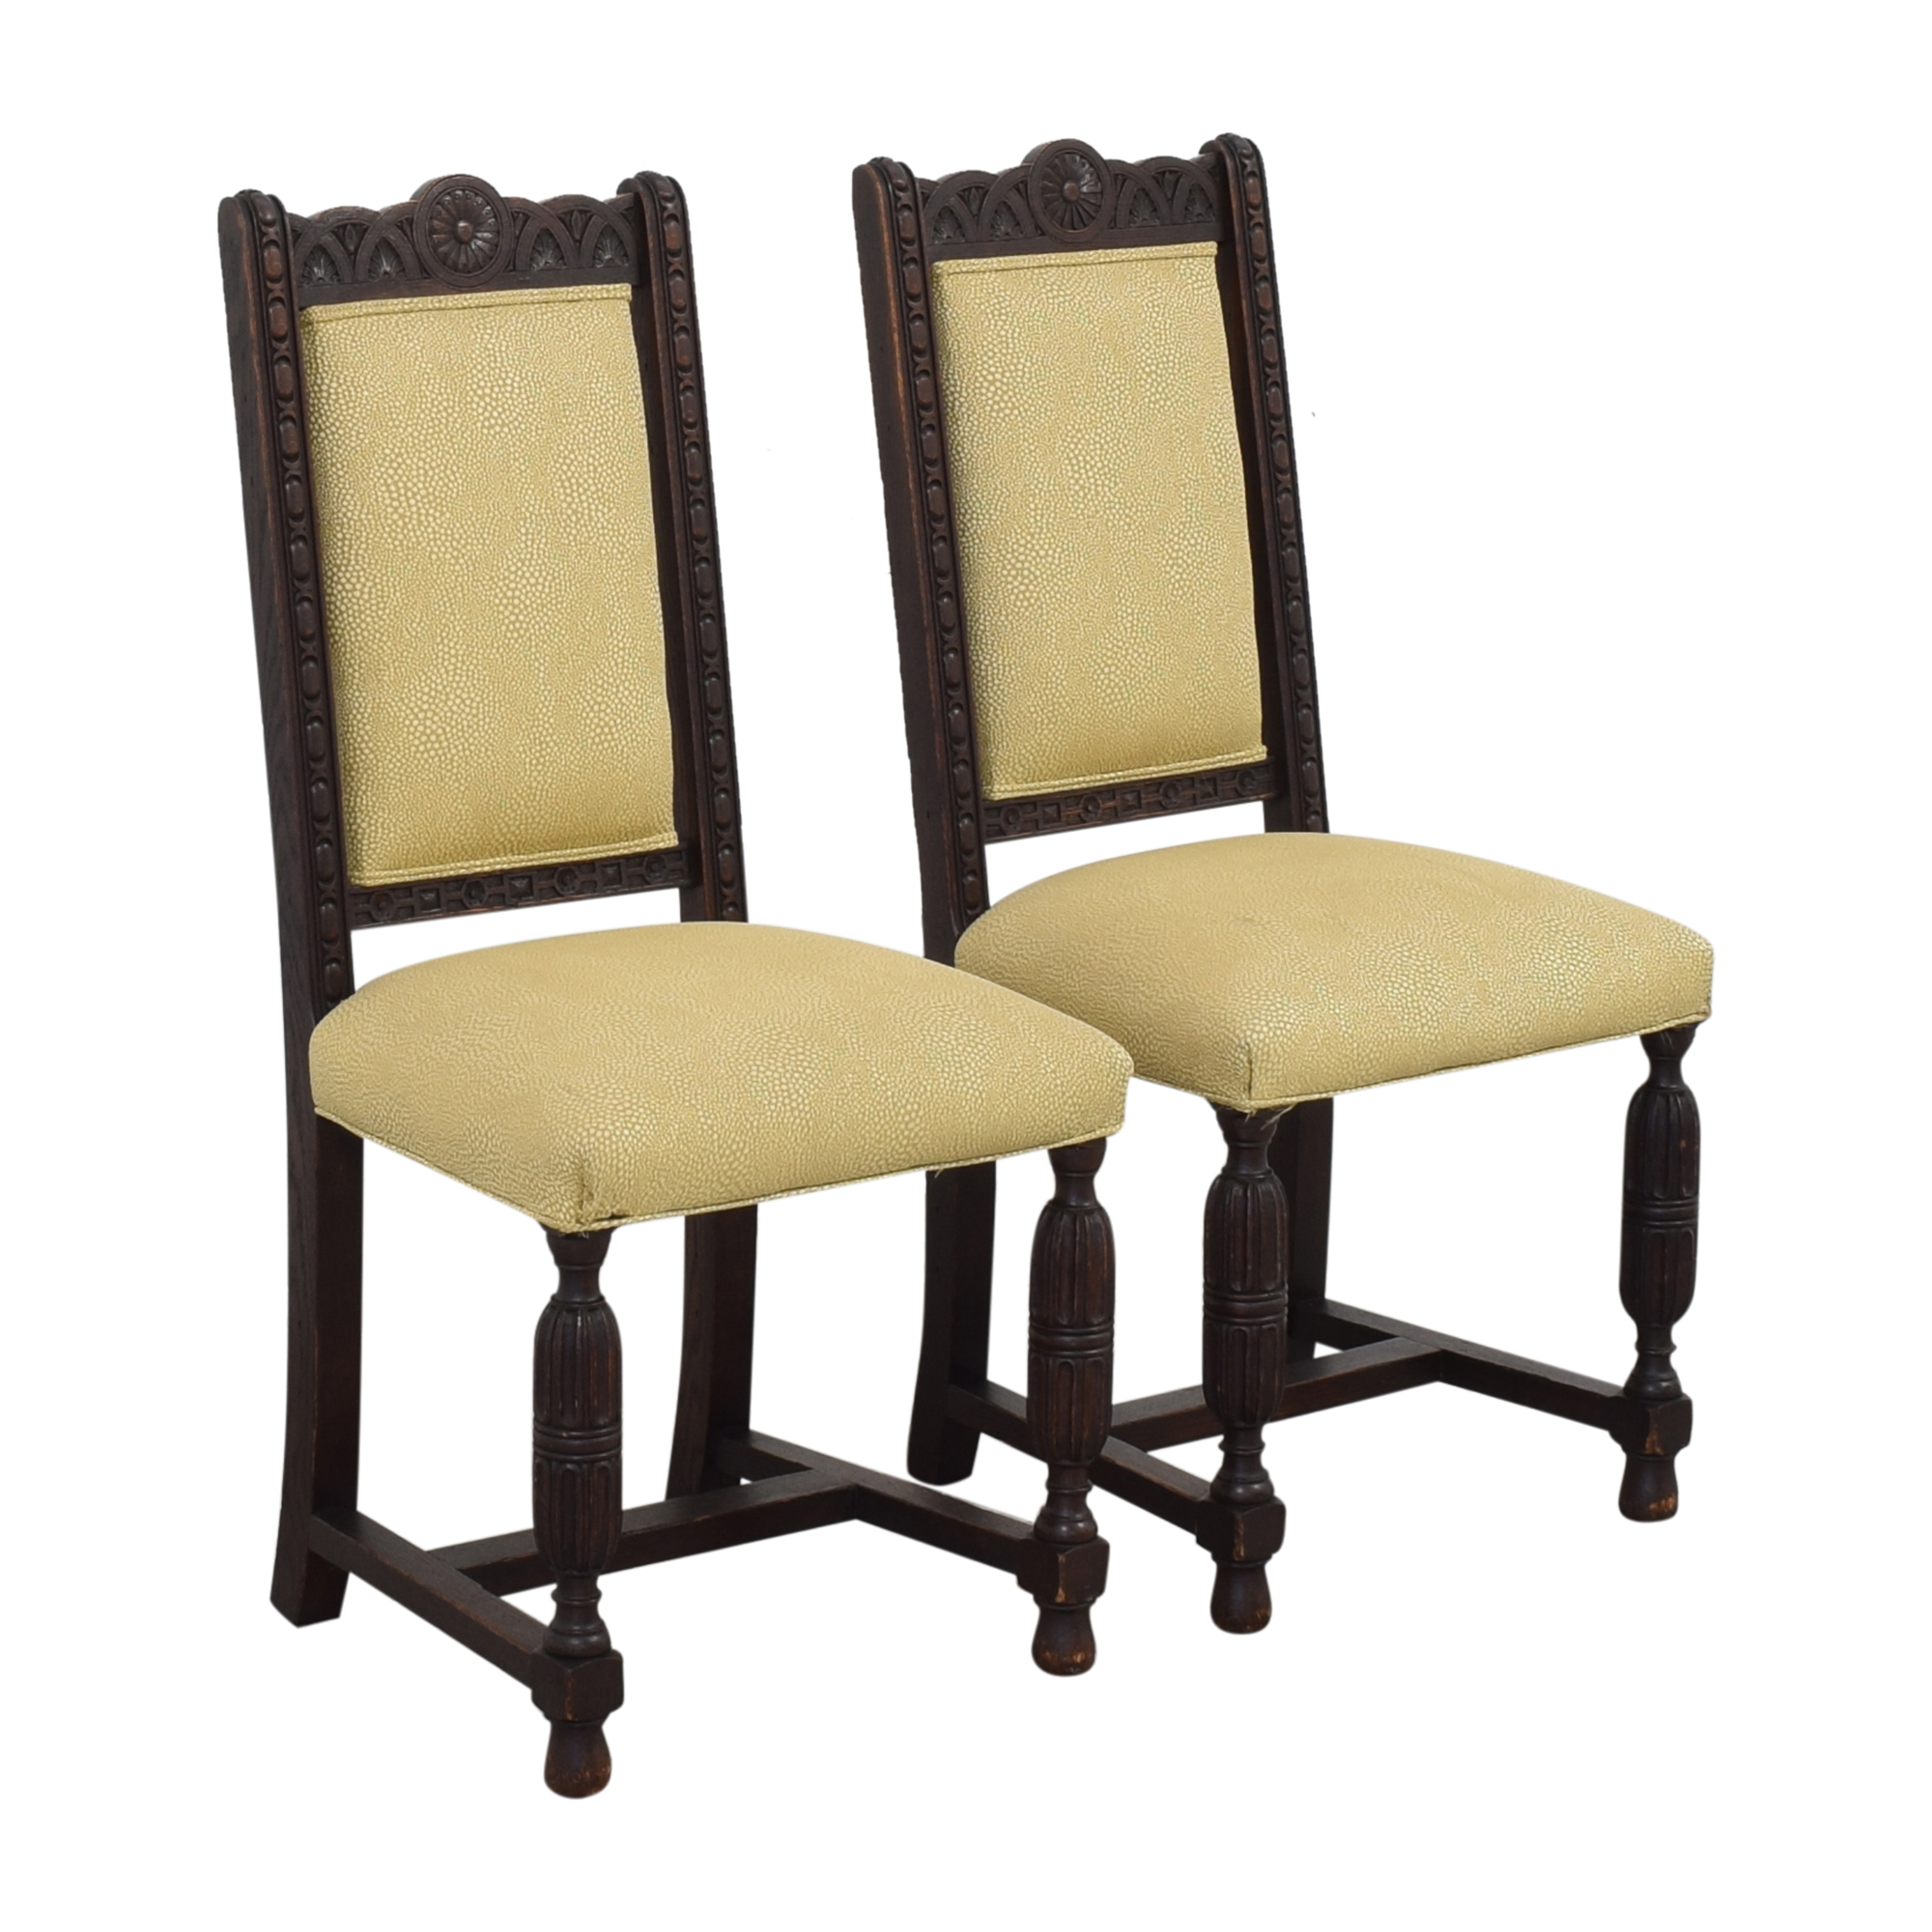 Vintage H. Lauzon Dining Chairs second hand